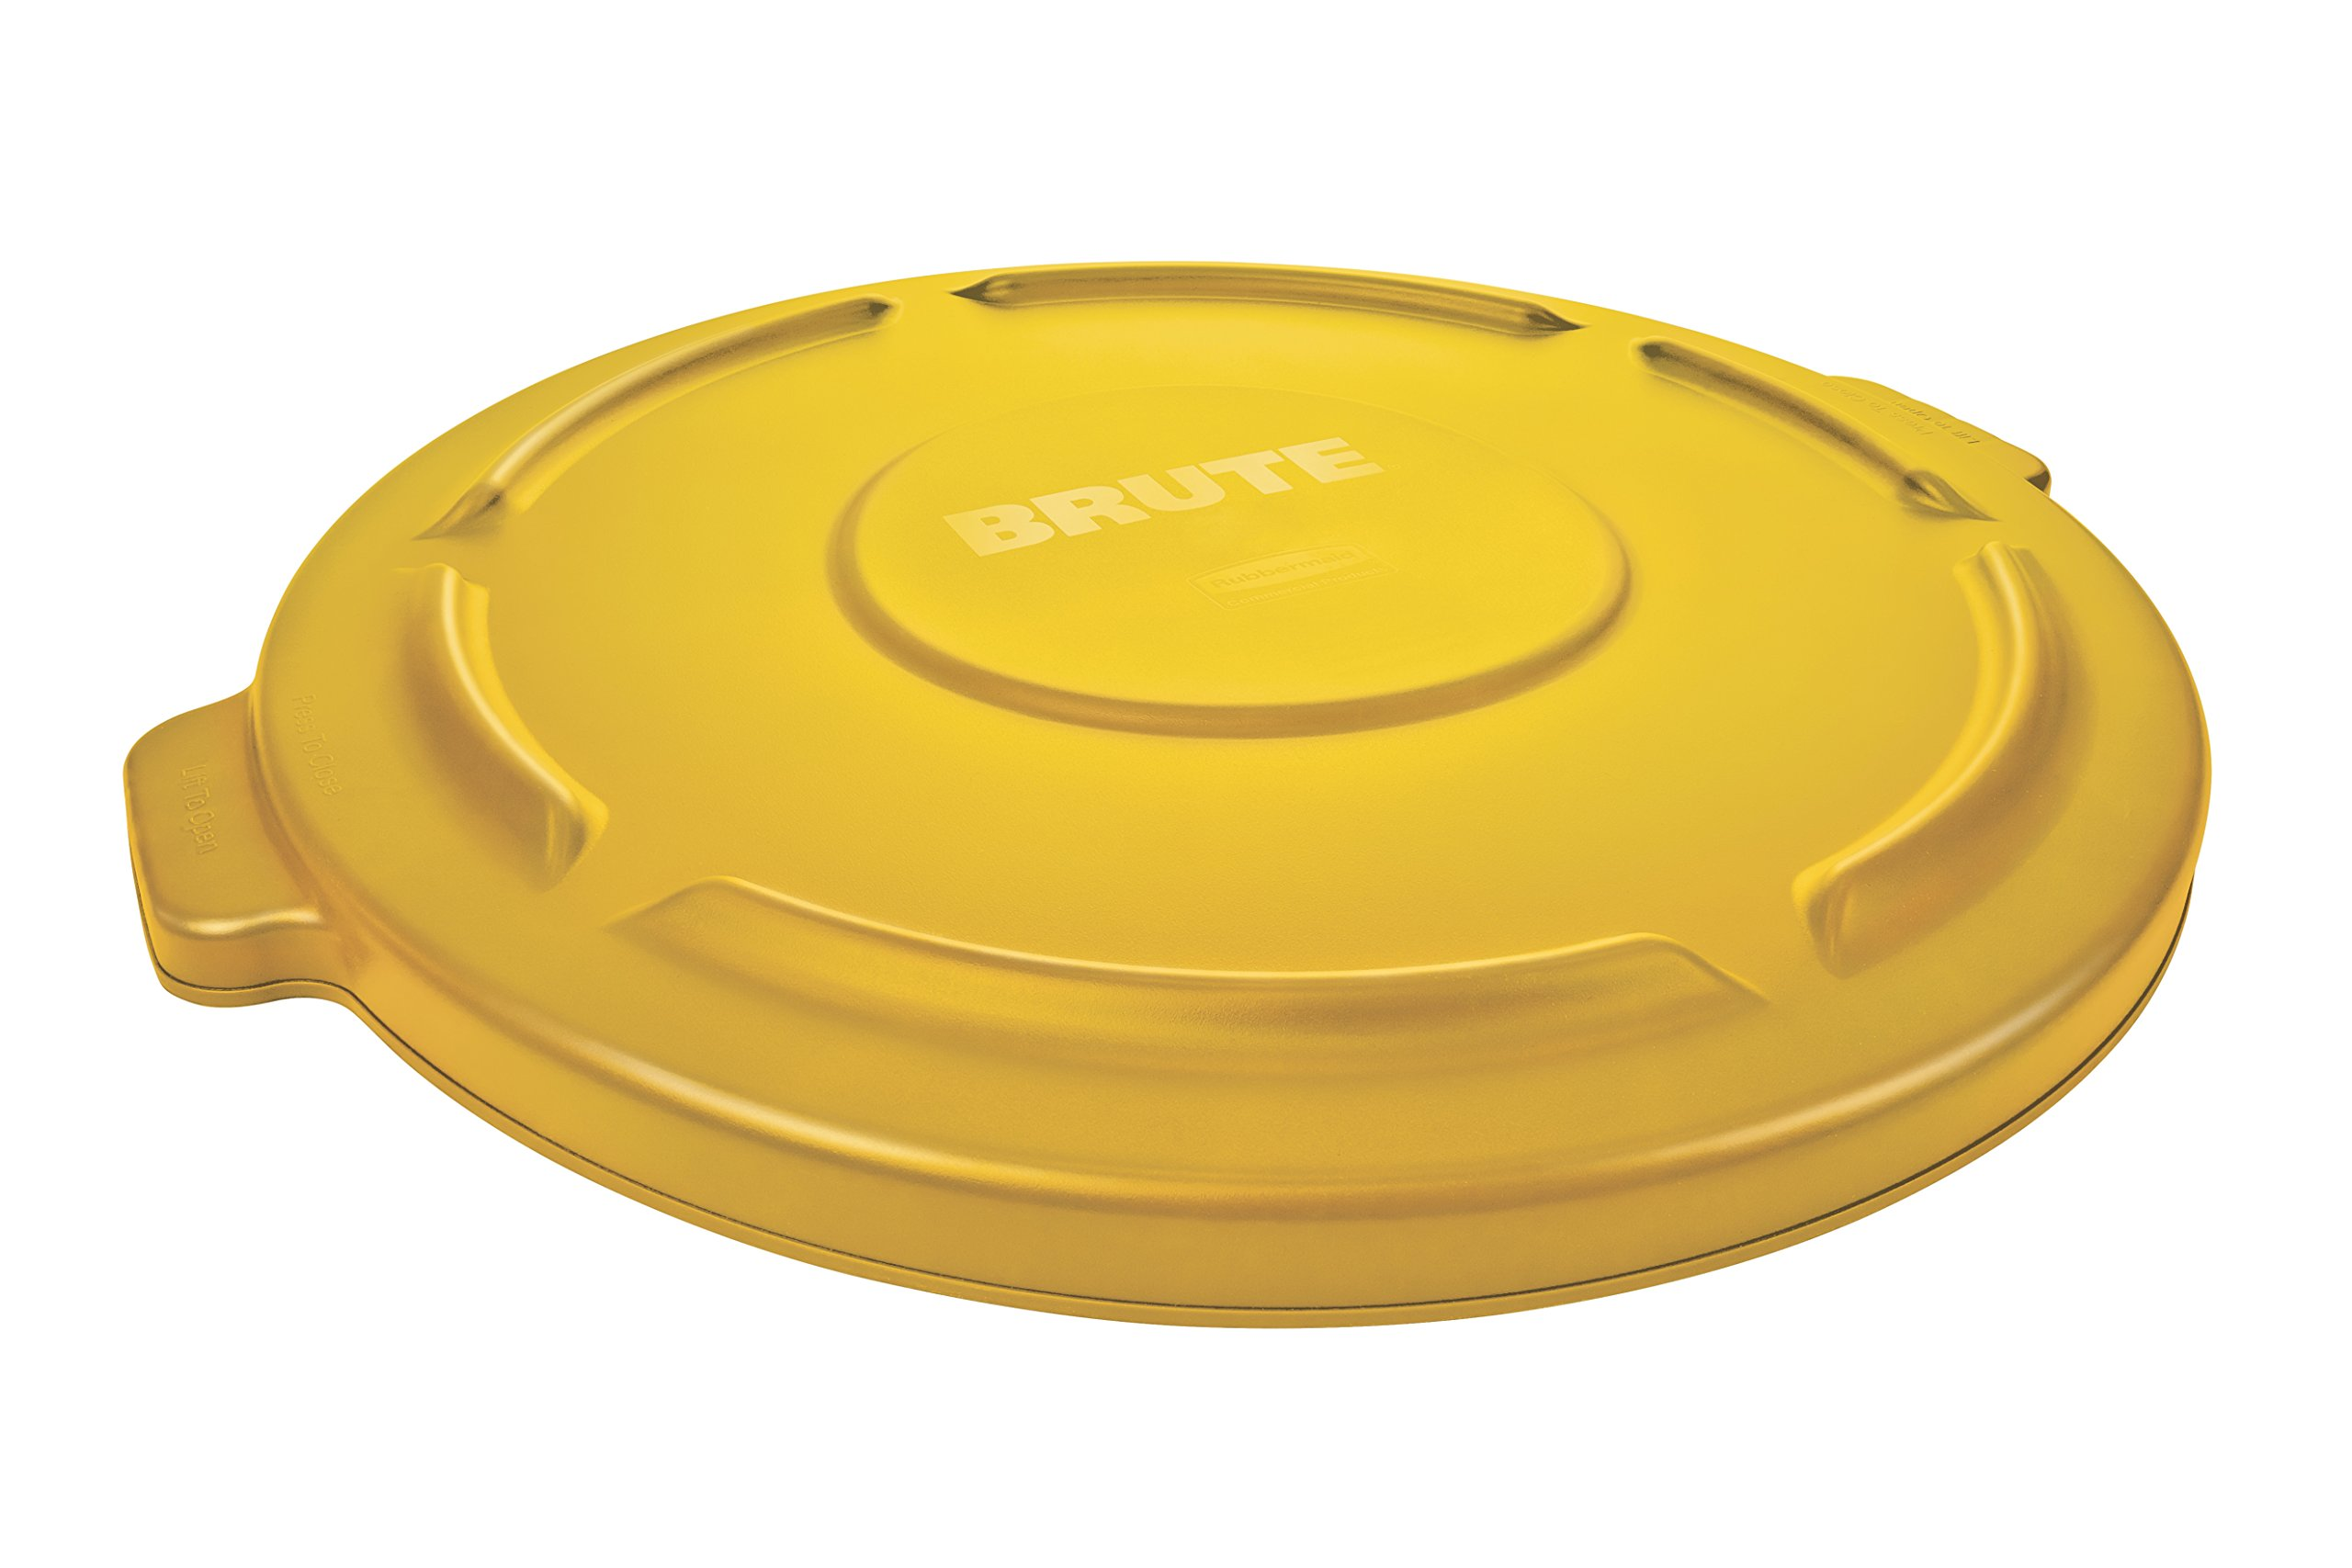 Rubbermaid Commercial FG260900YEL BRUTE Heavy-Duty Round Waste/Utility Container, 10-gallon Lid, Yellow